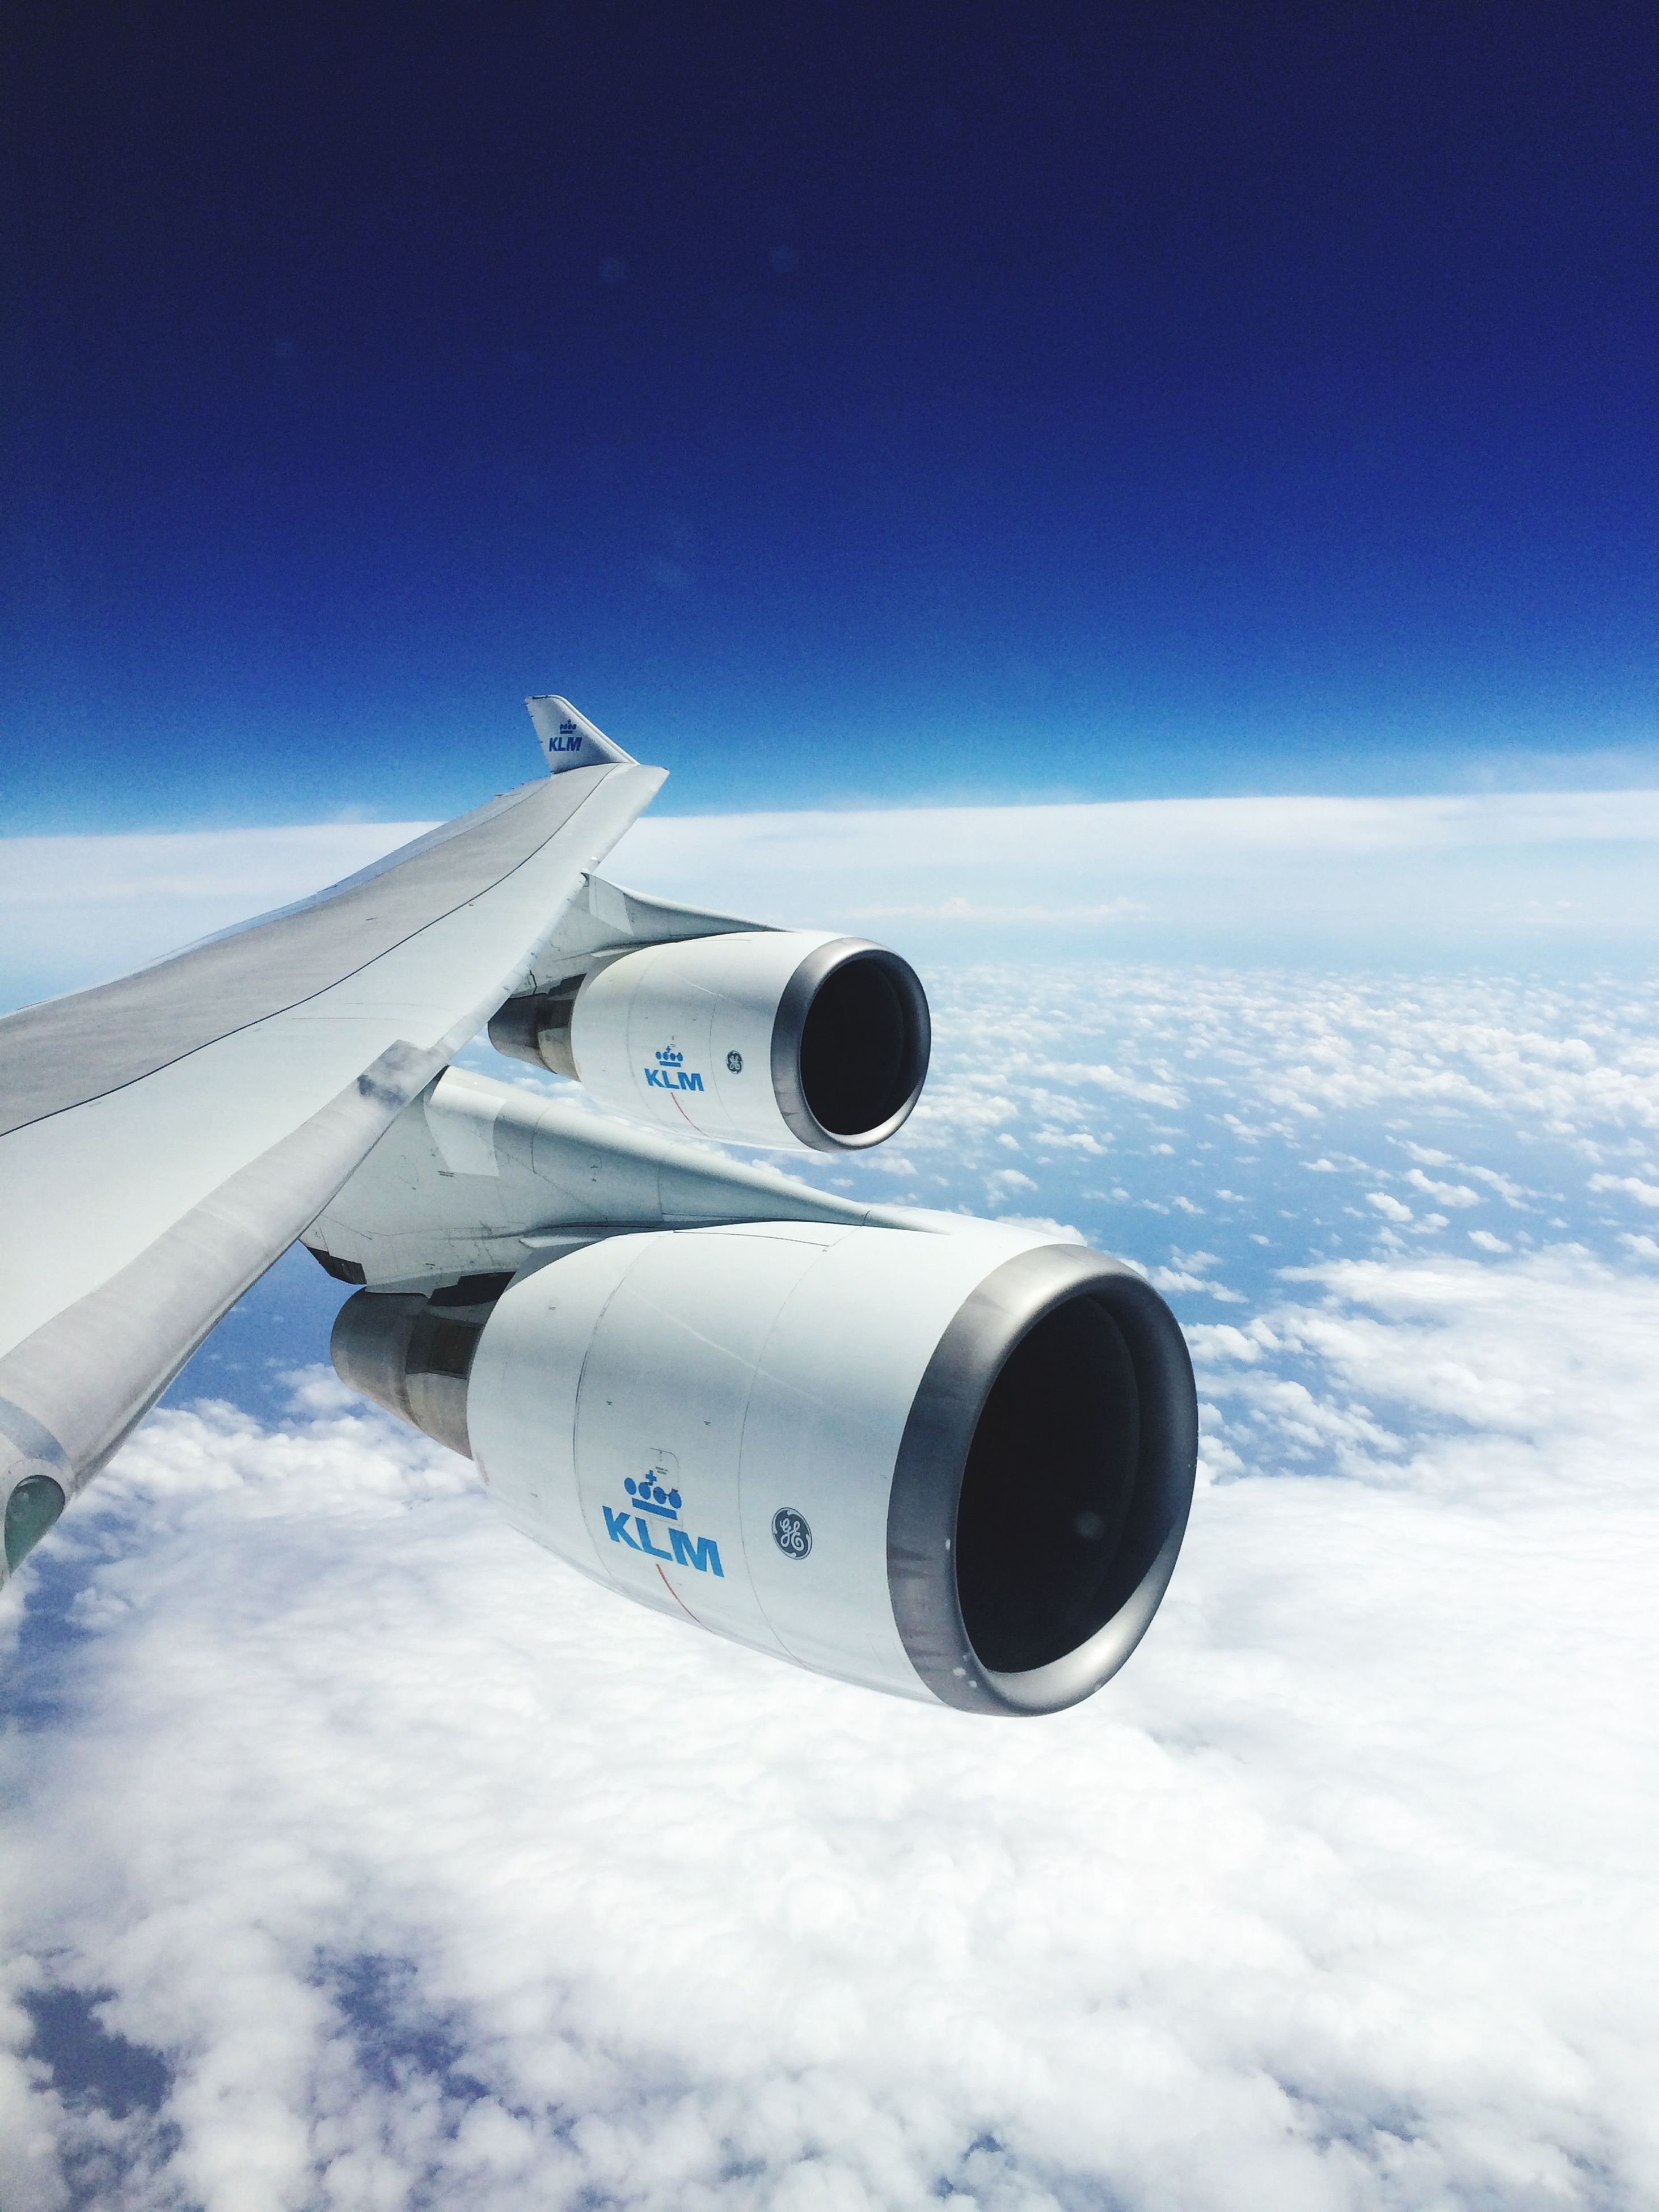 air vehicle, airplane, transportation, mode of transport, flying, aircraft wing, blue, sky, mid-air, journey, travel, part of, public transportation, cropped, cloud - sky, jet engine, aircraft, day, commercial airplane, white color